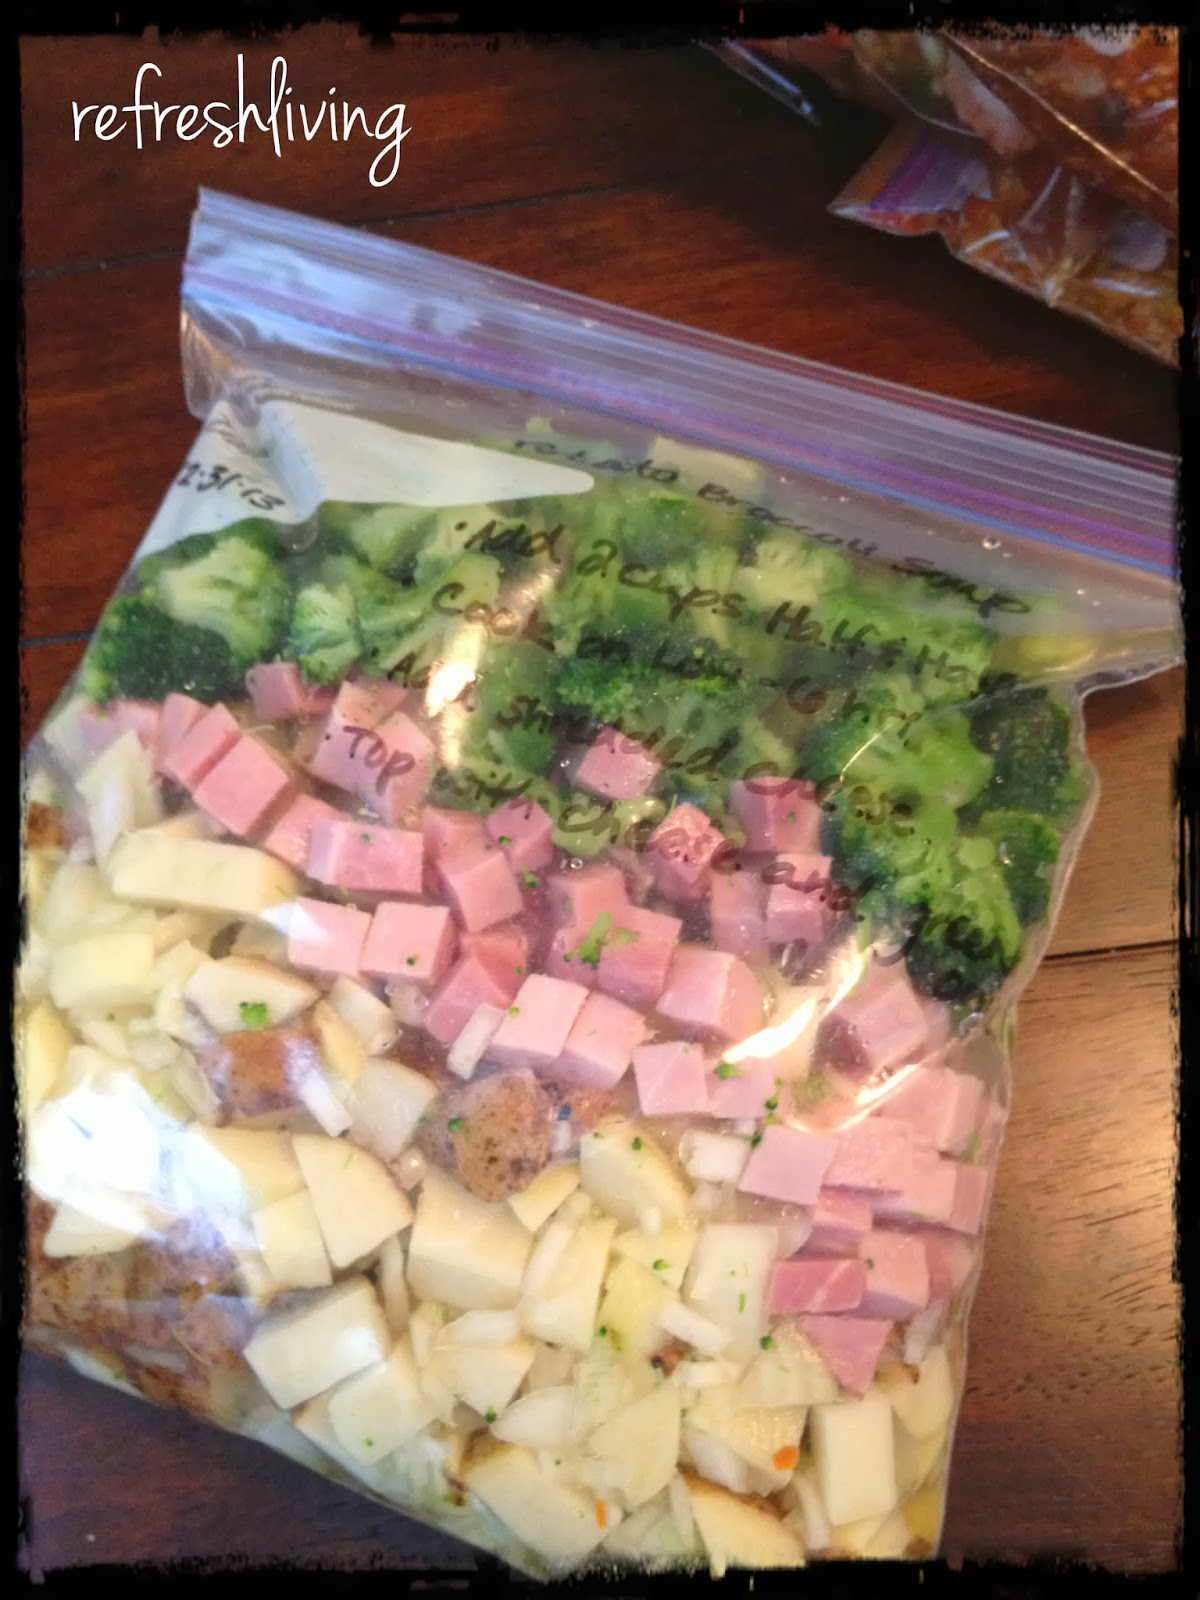 Chicken Freezer Meals Freezer Cooking Chicken Thigh Recipes Crockpot Boneless Paleo Chicken Marinade Freezer Prep Meals Meals To Freeze Freezer Meals Healthy Freezer Meal Recipes Dump Chicken Forward Freezer Meals Cilantro Lime Chicken recipe is a great way to get a jump start on the summer grilling season and have time to cook dinner after a long day.